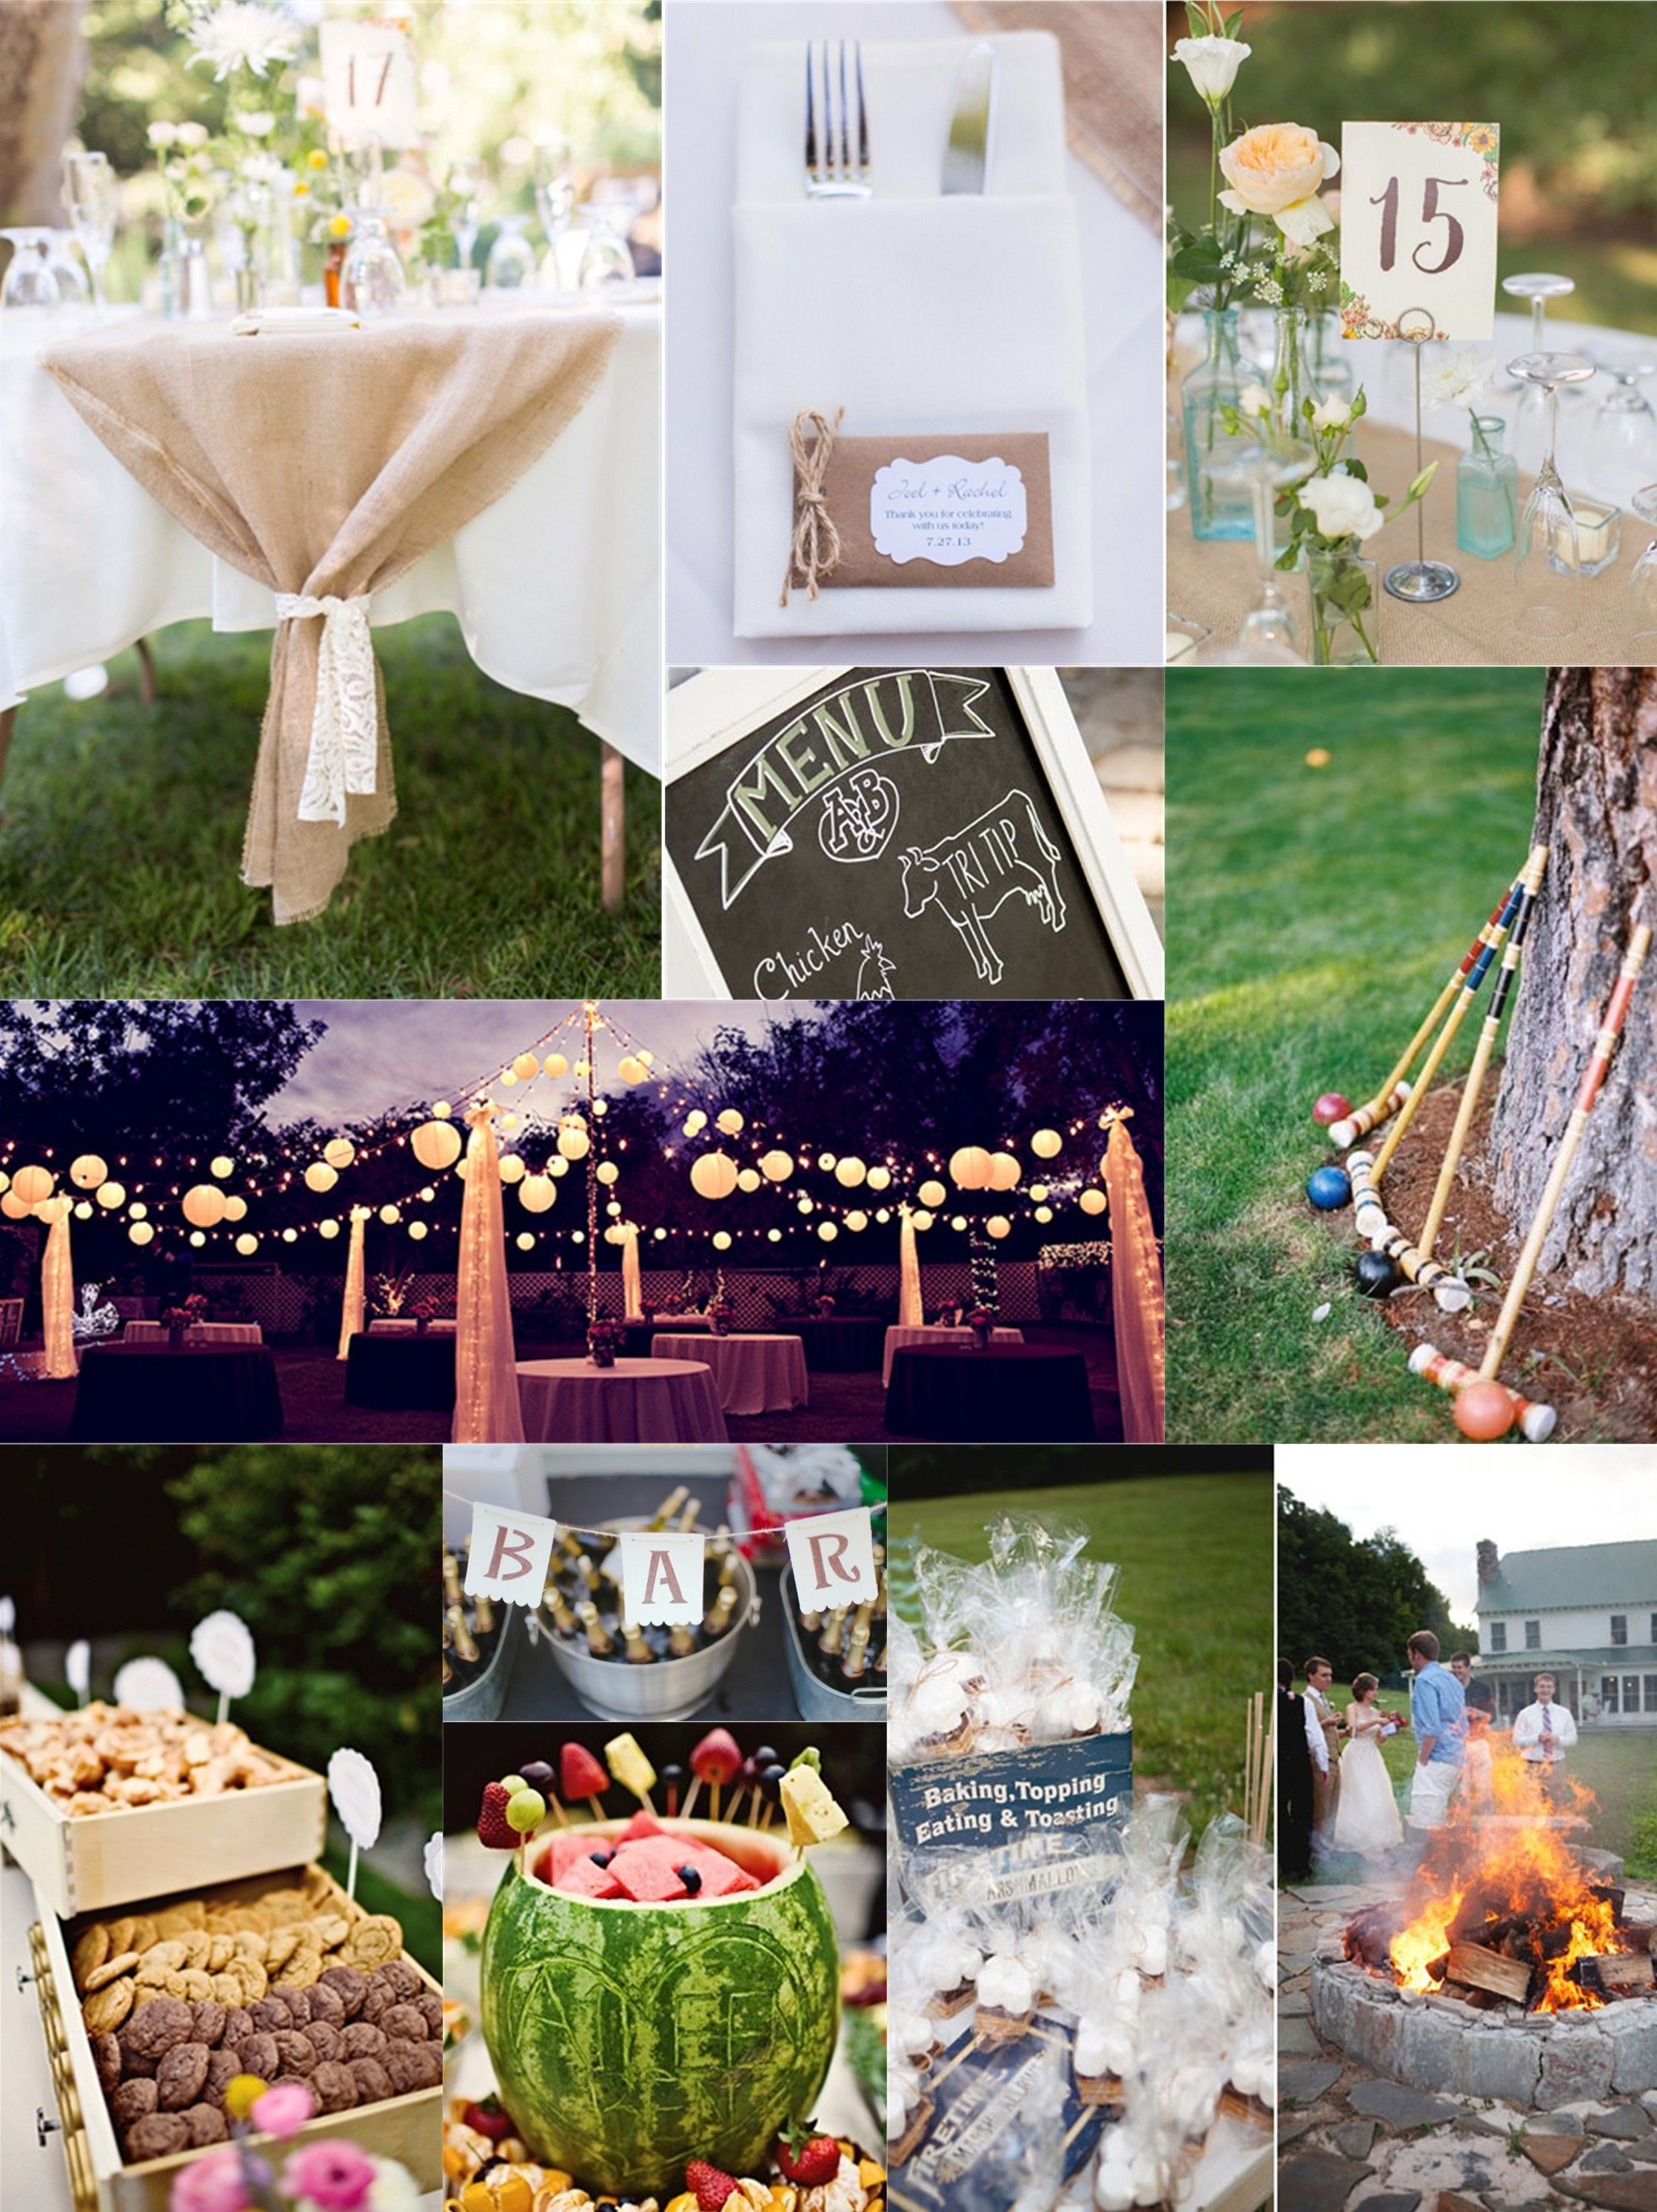 Backyard Wedding On A Budget Ideas In Essential Guide To